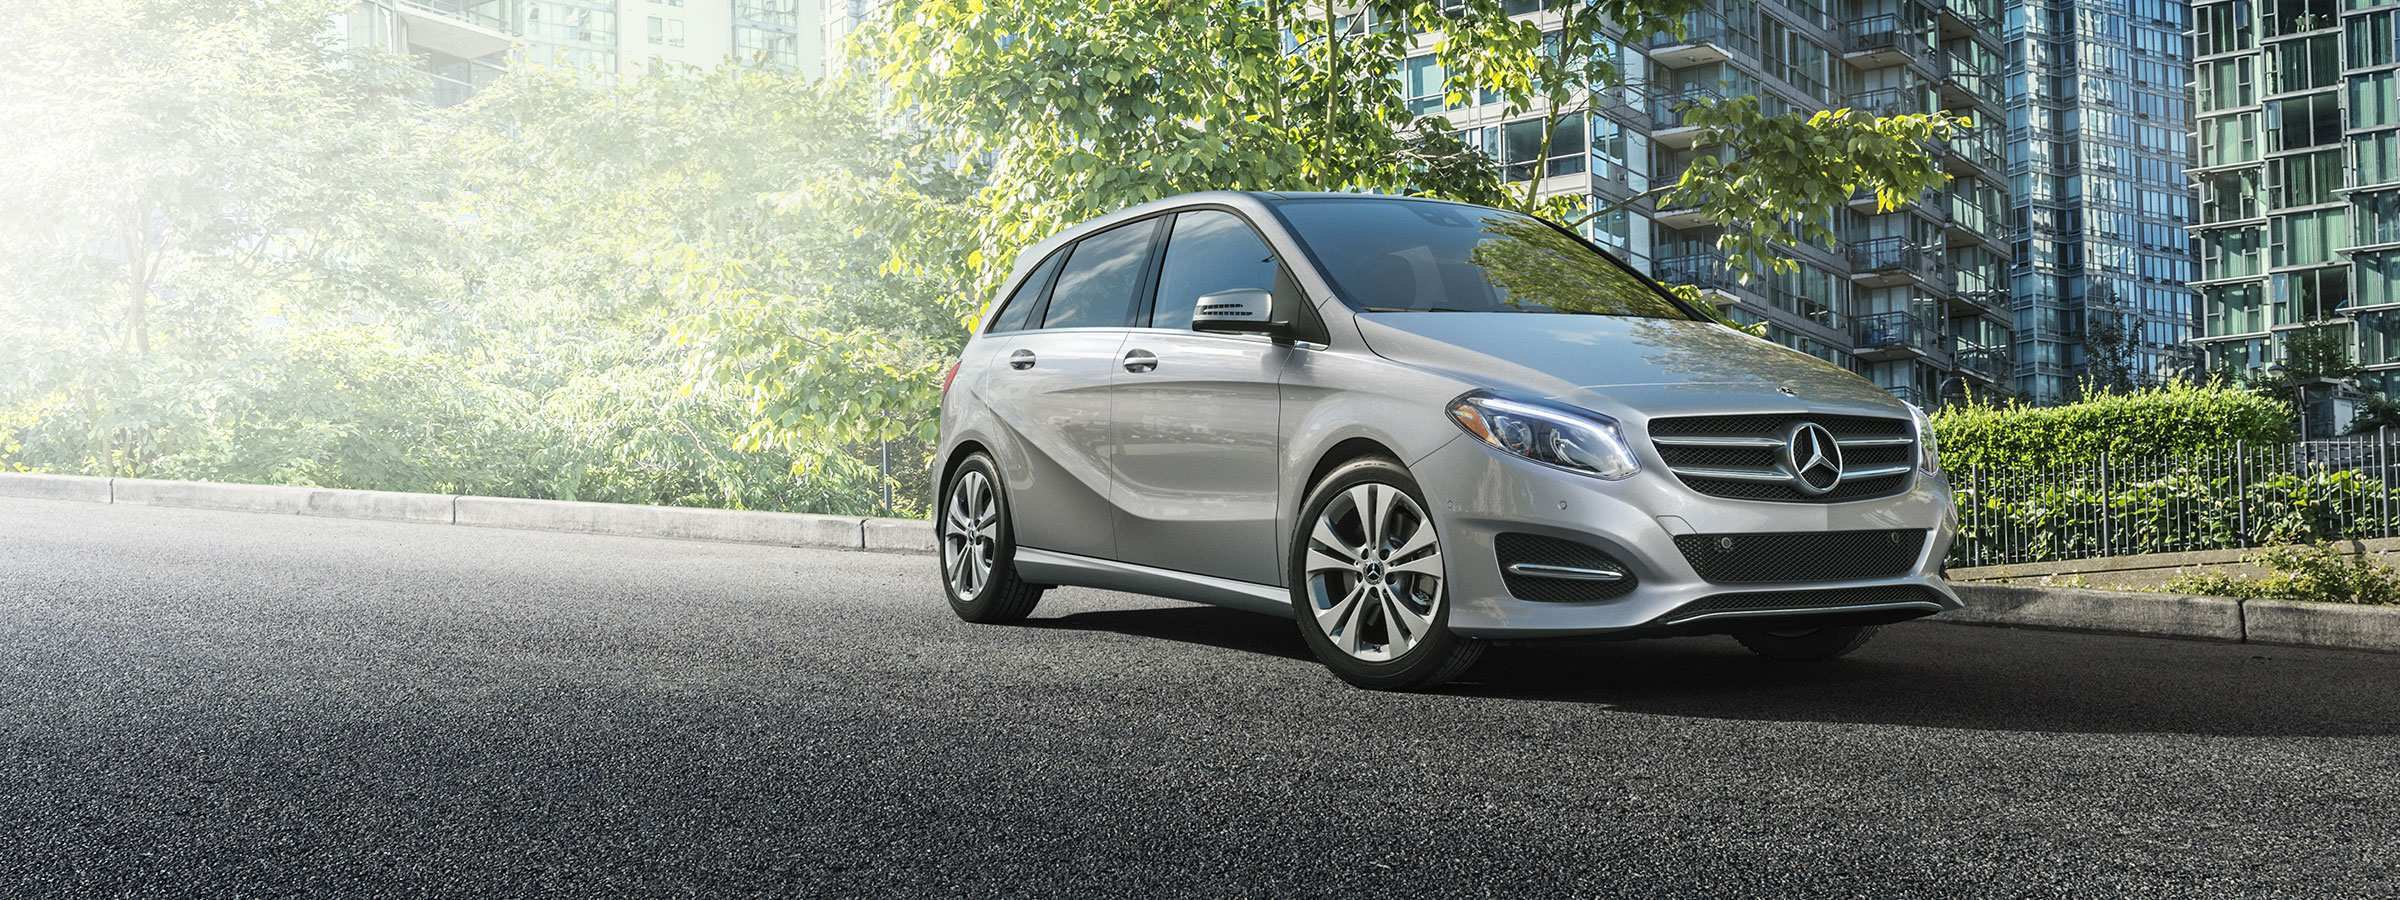 22 Concept of Best Mercedes 2019 B Class Price And Release Date Exterior for Best Mercedes 2019 B Class Price And Release Date